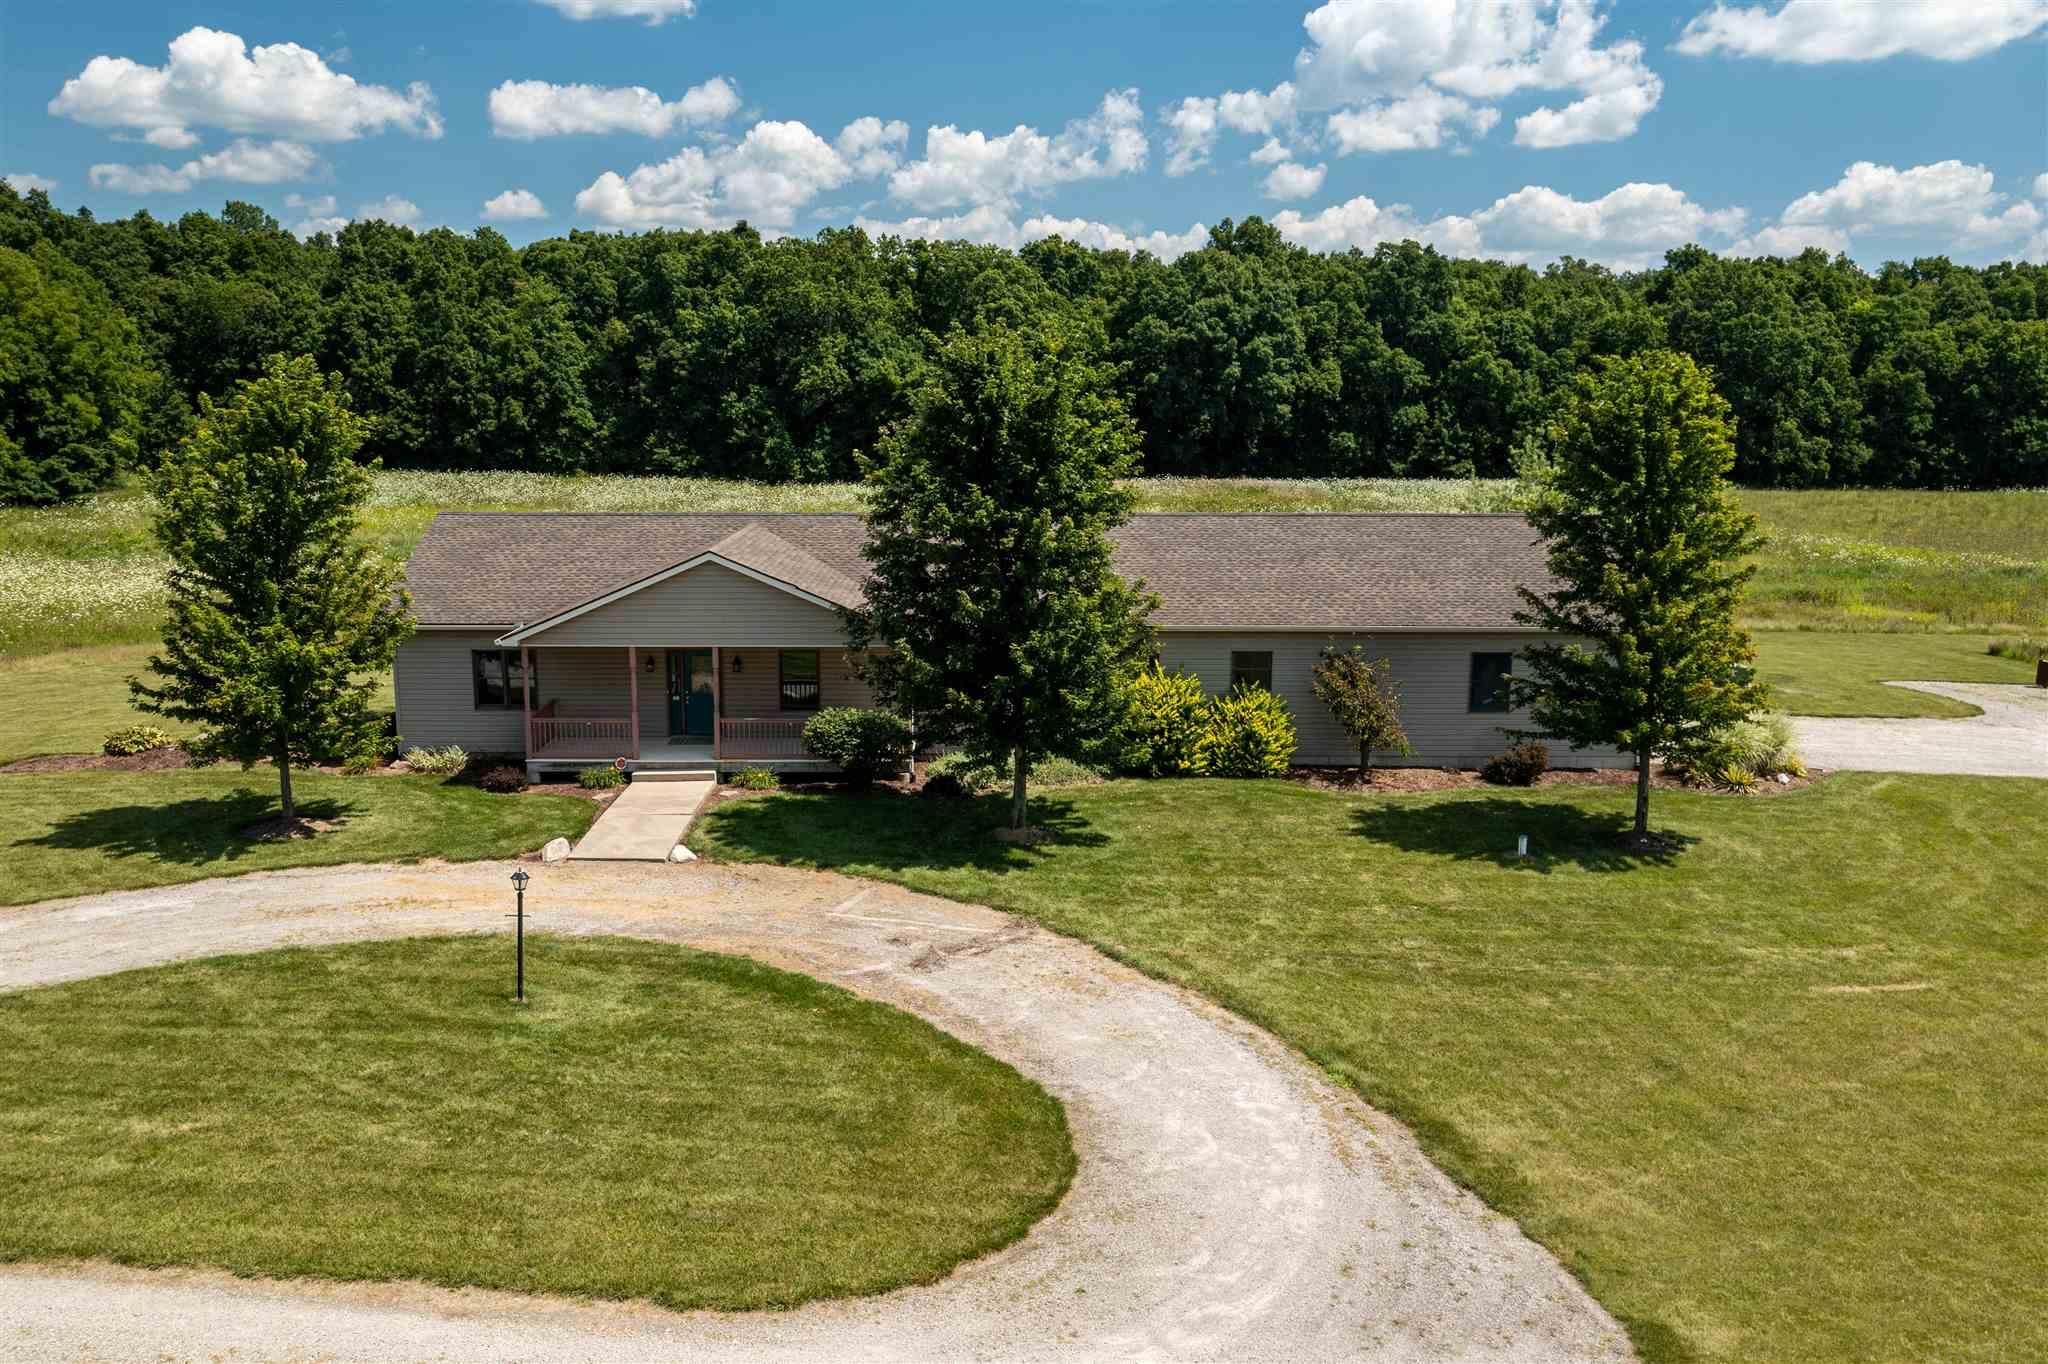 Hunters and fisherman's paradise! Spacious ranch home on 64 acres with a large pond. The back deck overlooks the large pond and 14 acres of woods. There is also a large Pole barn for all your toys. The home has a large mudroom off the garage that has stairs to the basement and a separate laundry room. There are two staircases. The daylight unfinished basement is plumbed for a full bathroom.